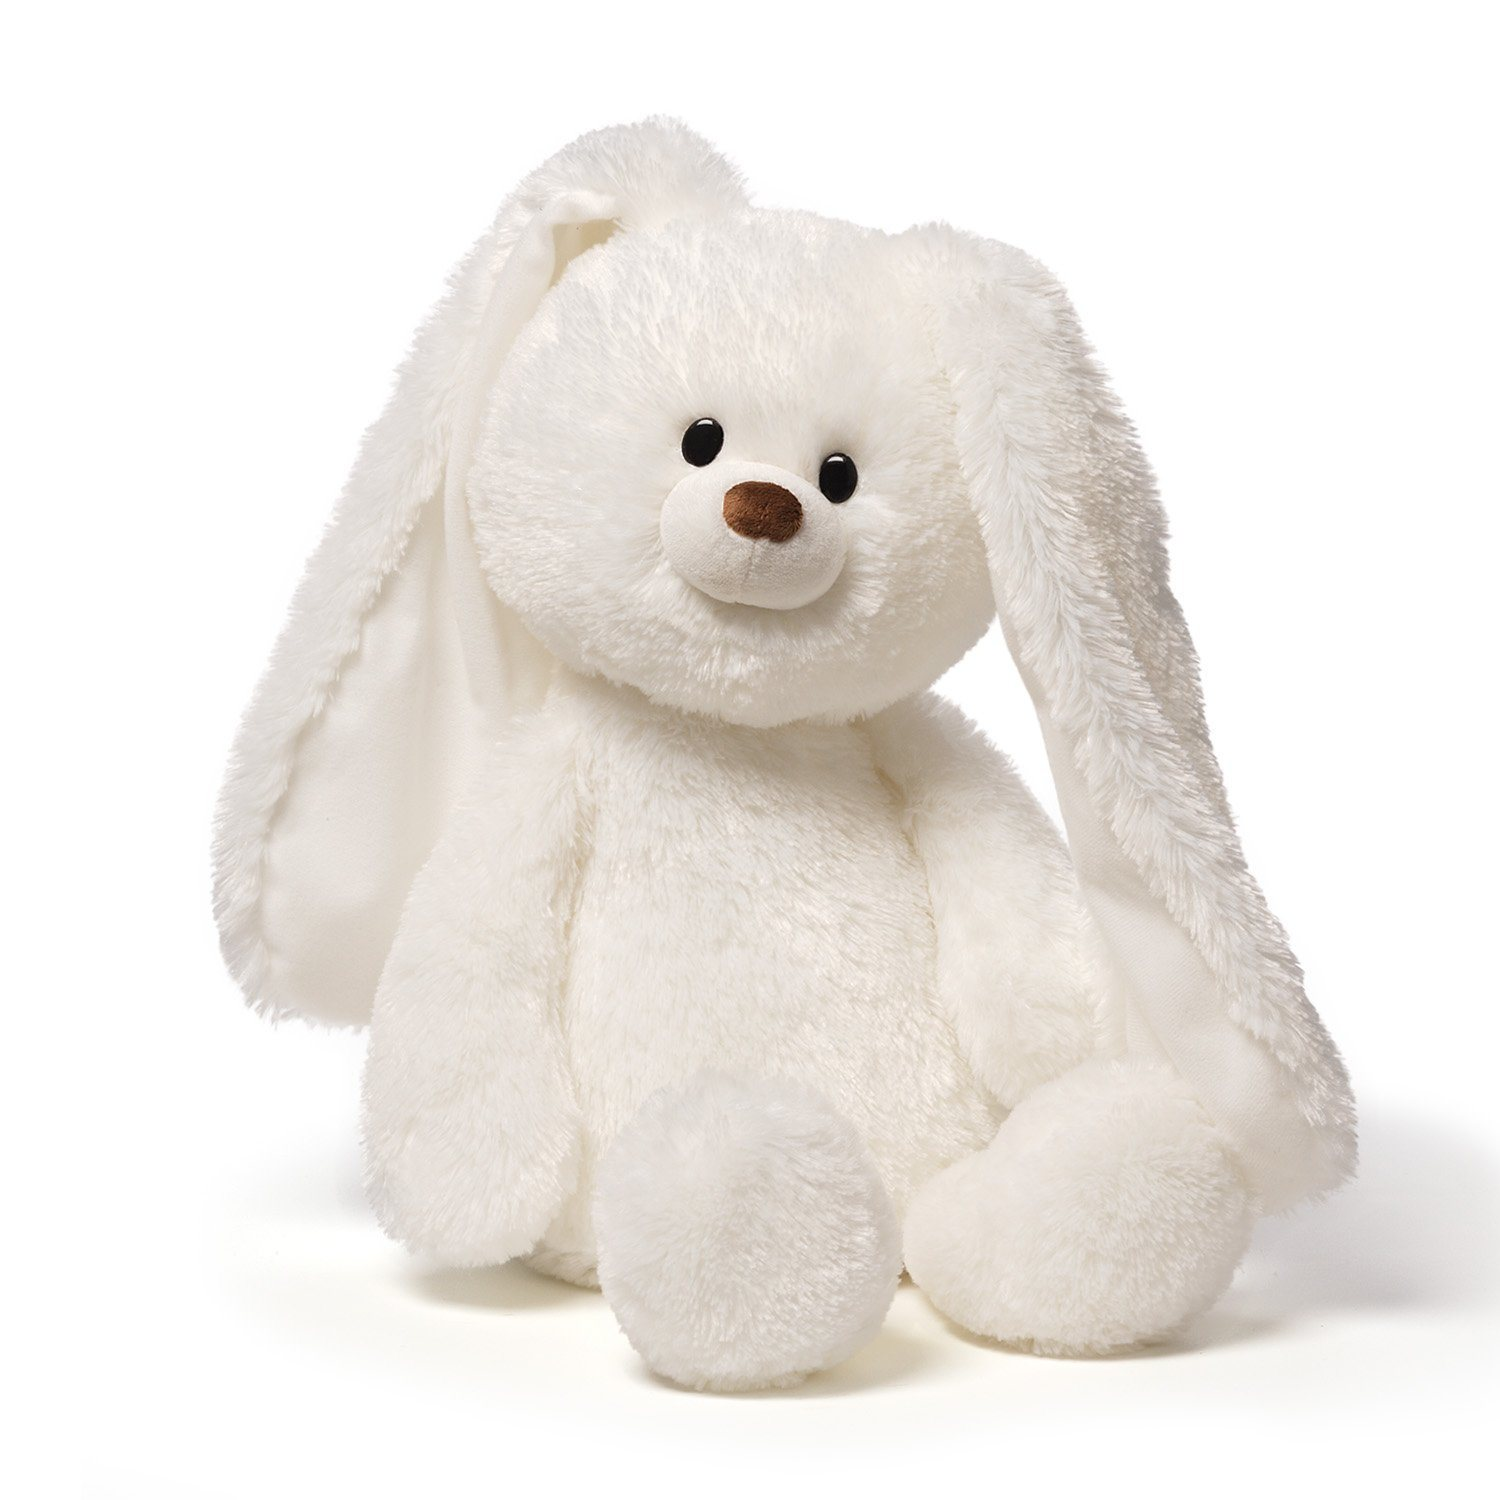 Cuddle Super Soft Plush Toy Bunny